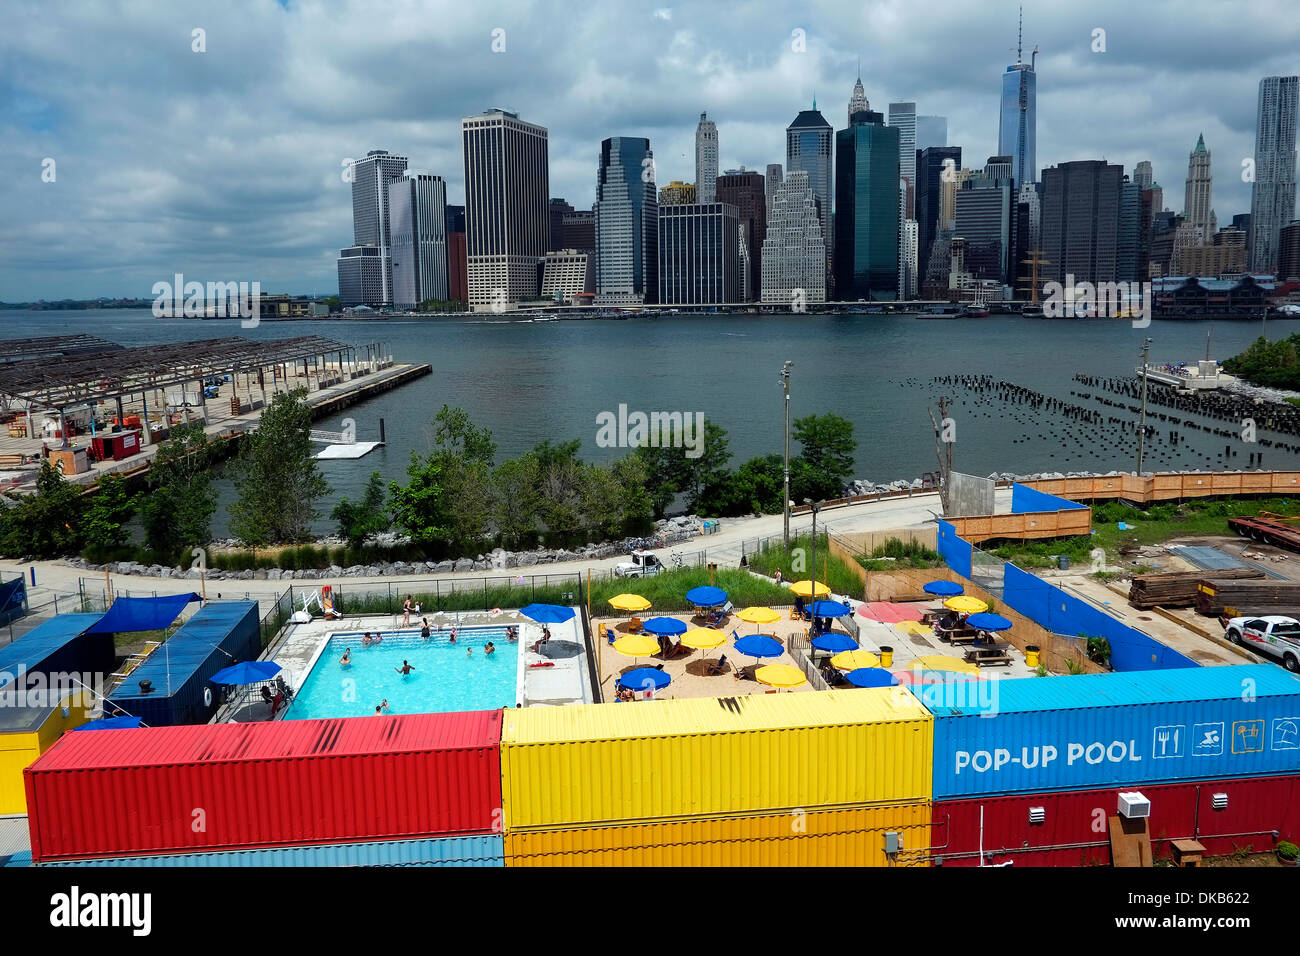 a pop up outdoor swimming pool in brooklyn heights new york with a stock photo 63555802 alamy